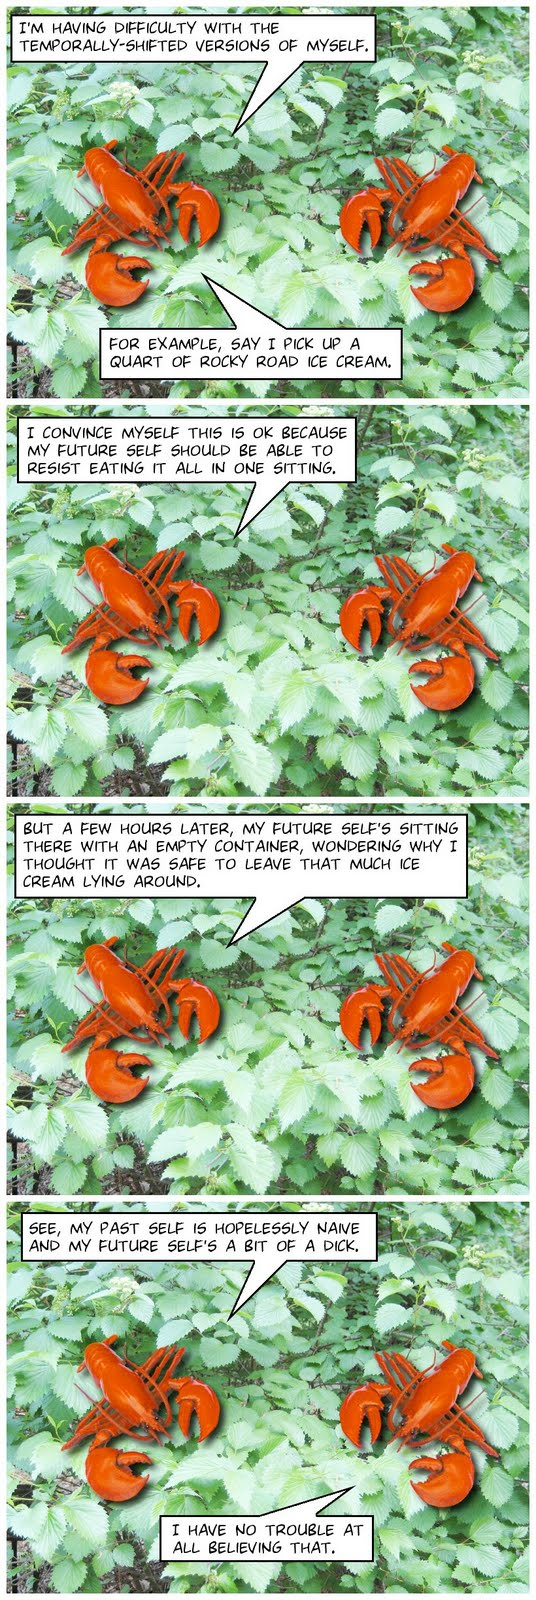 Tree Lobsters #239